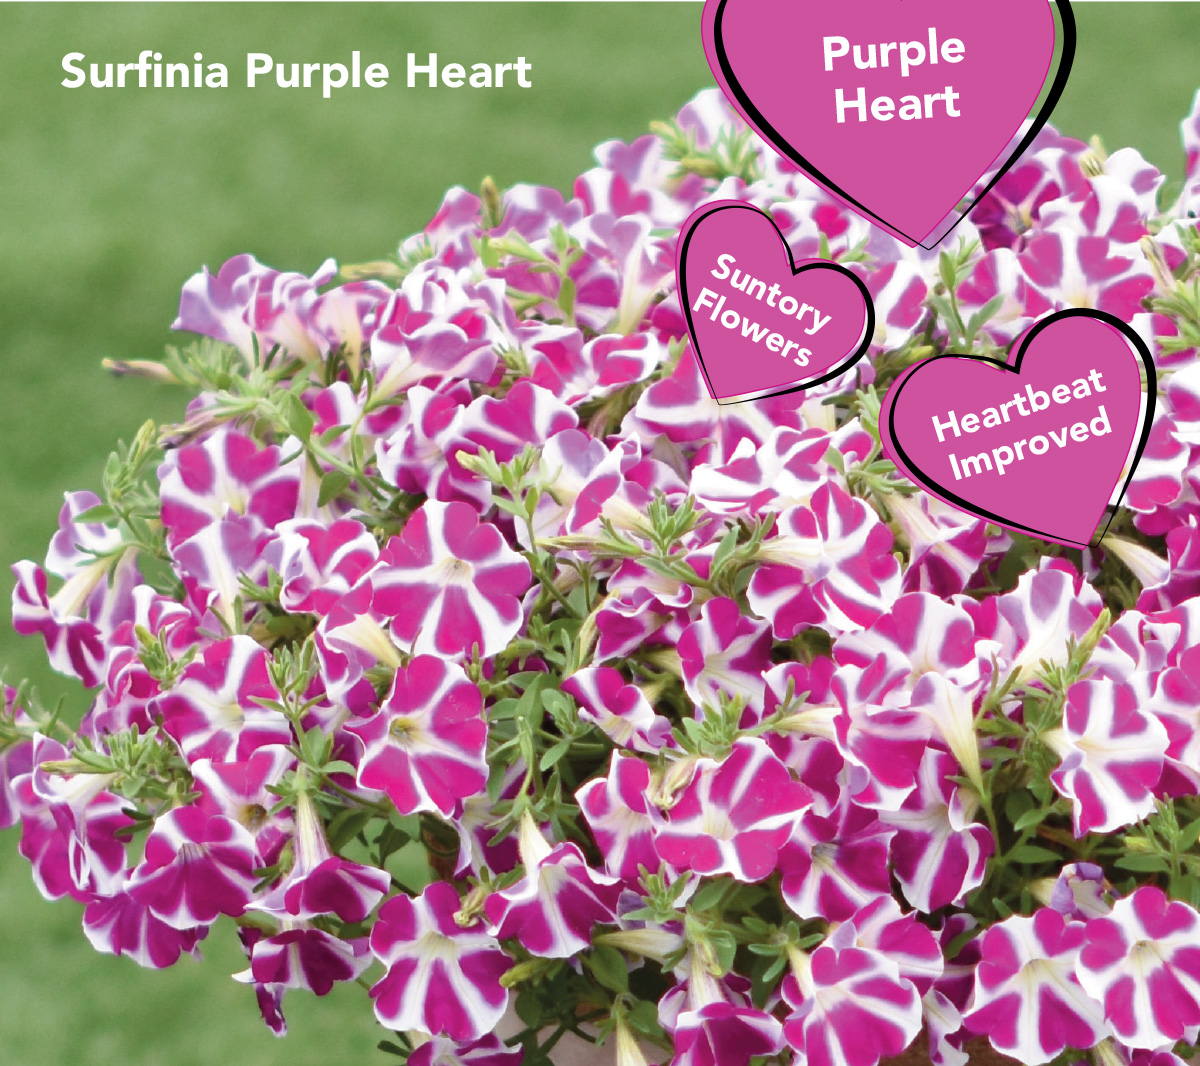 Surfinia Purple Heart is the perfect companion to one of our top sellers Surfinia Heartbeat!